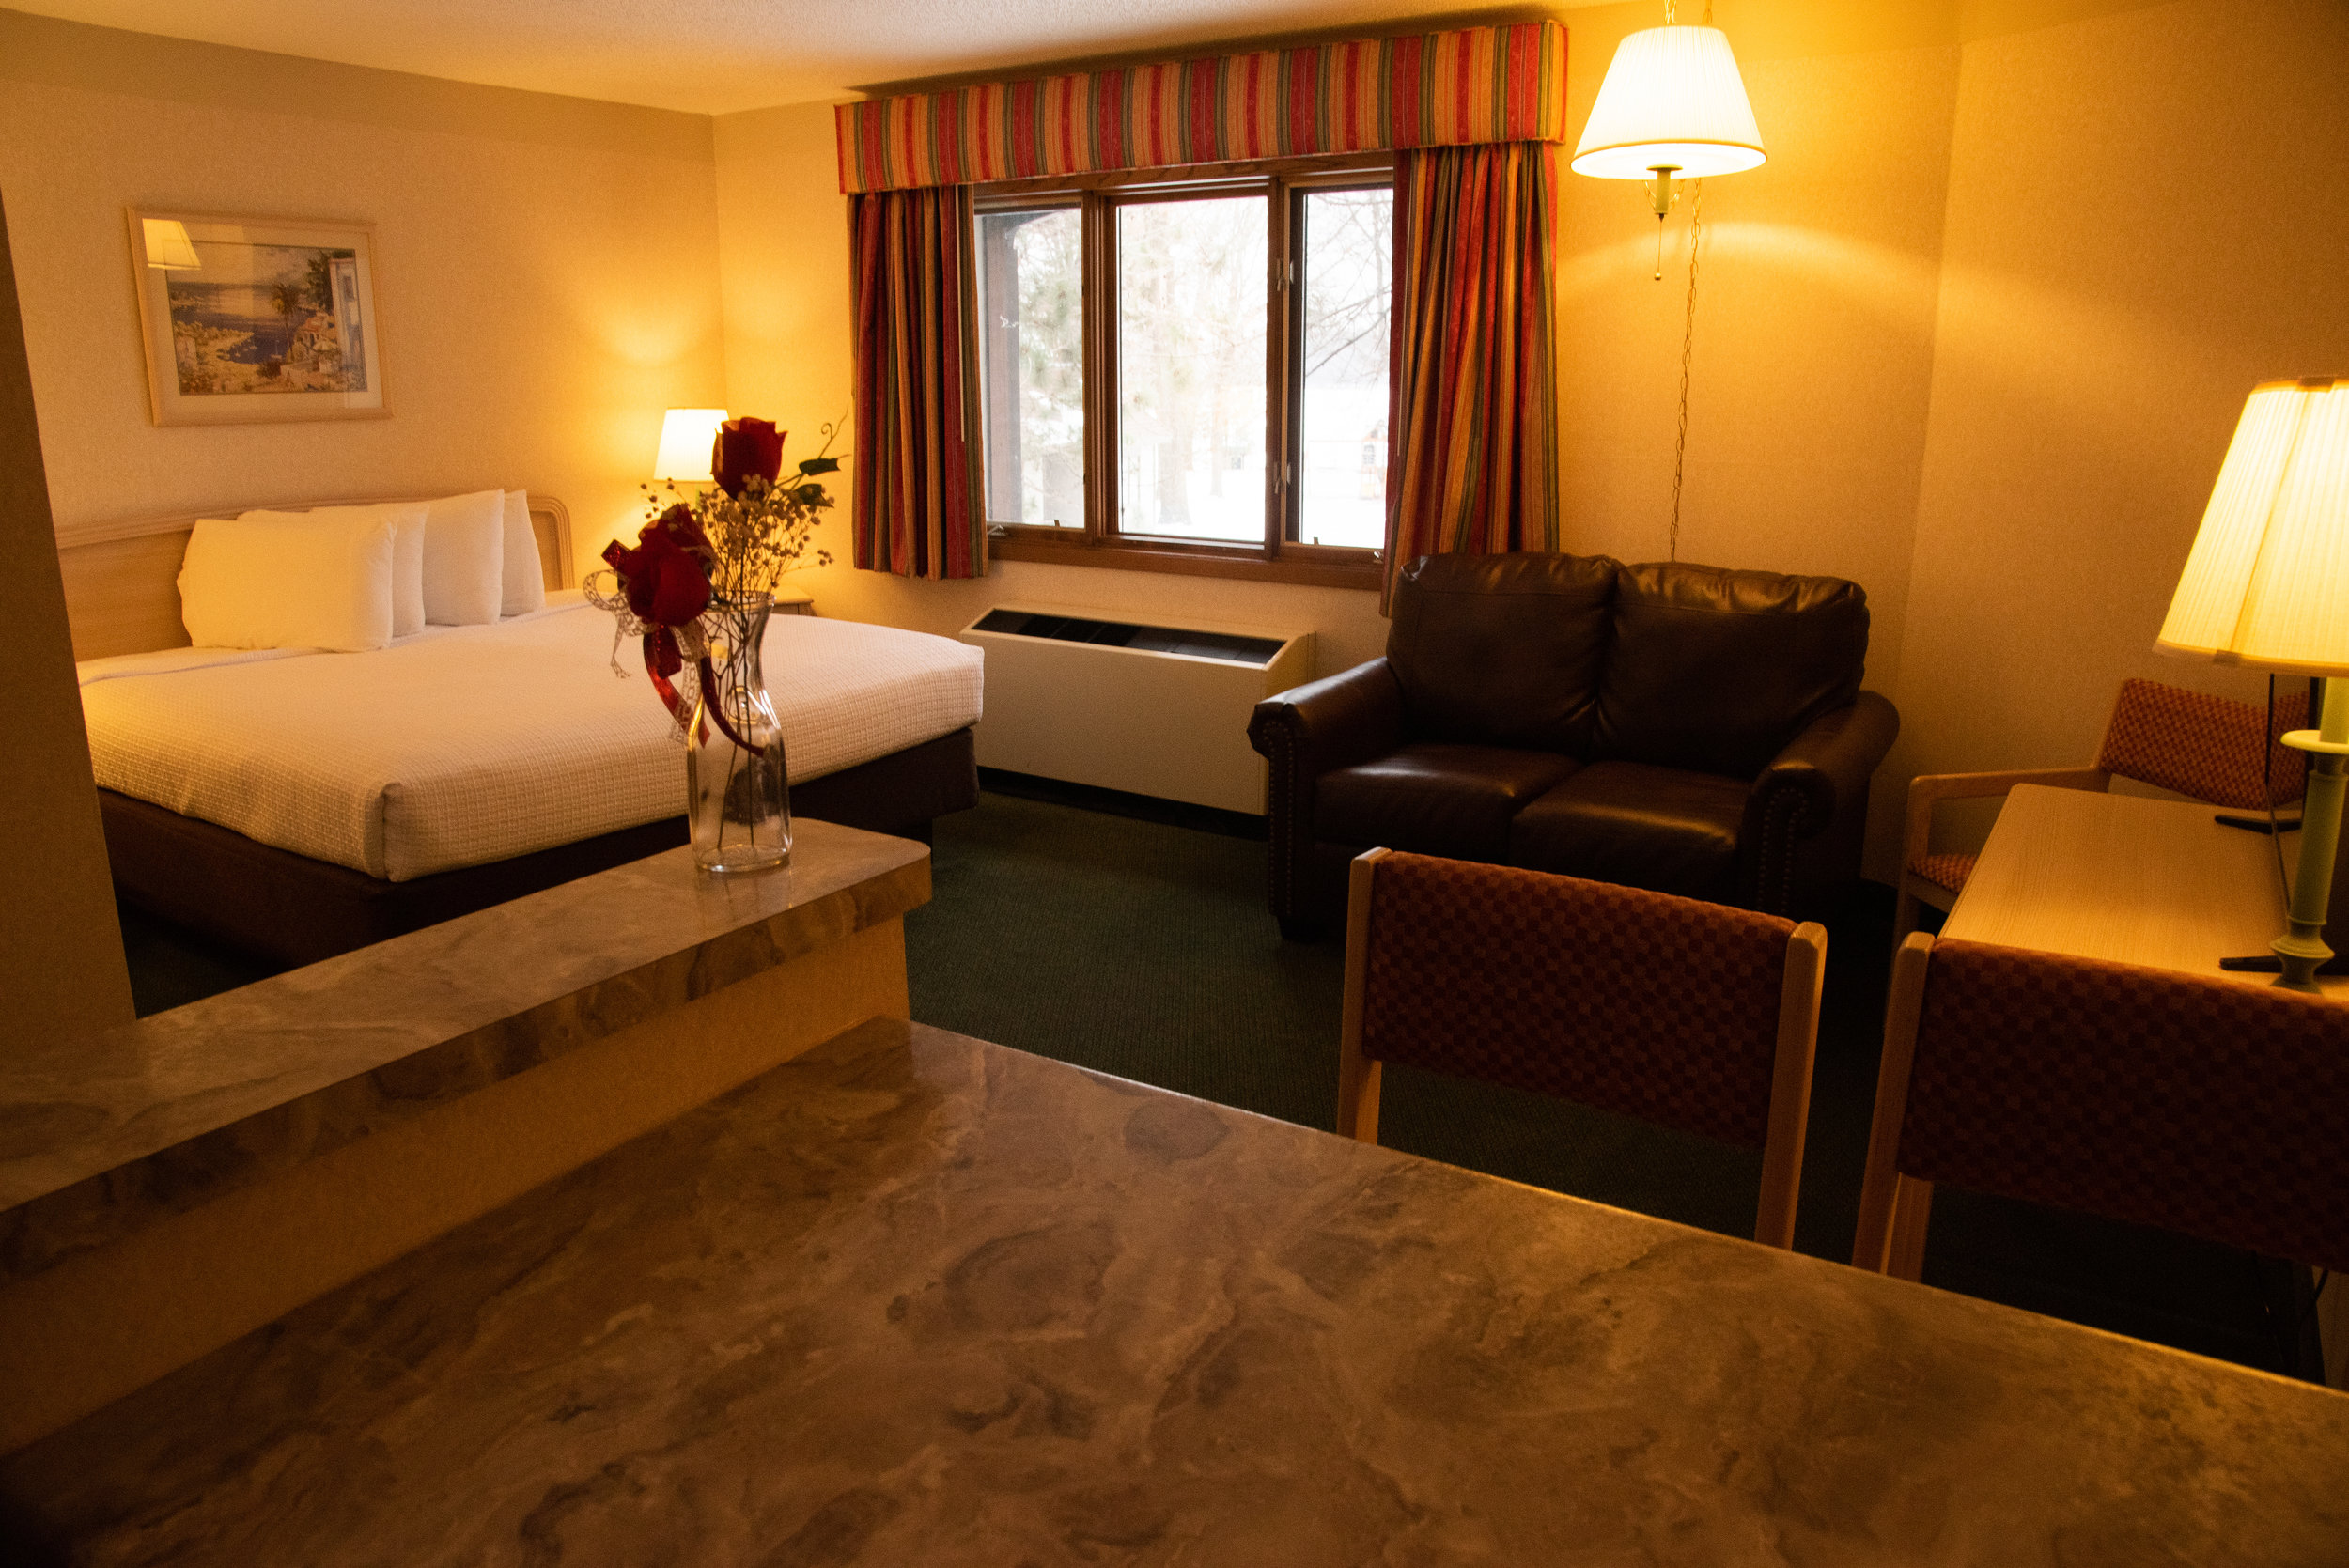 King Suites - Spacious king rooms perfect for couples or business